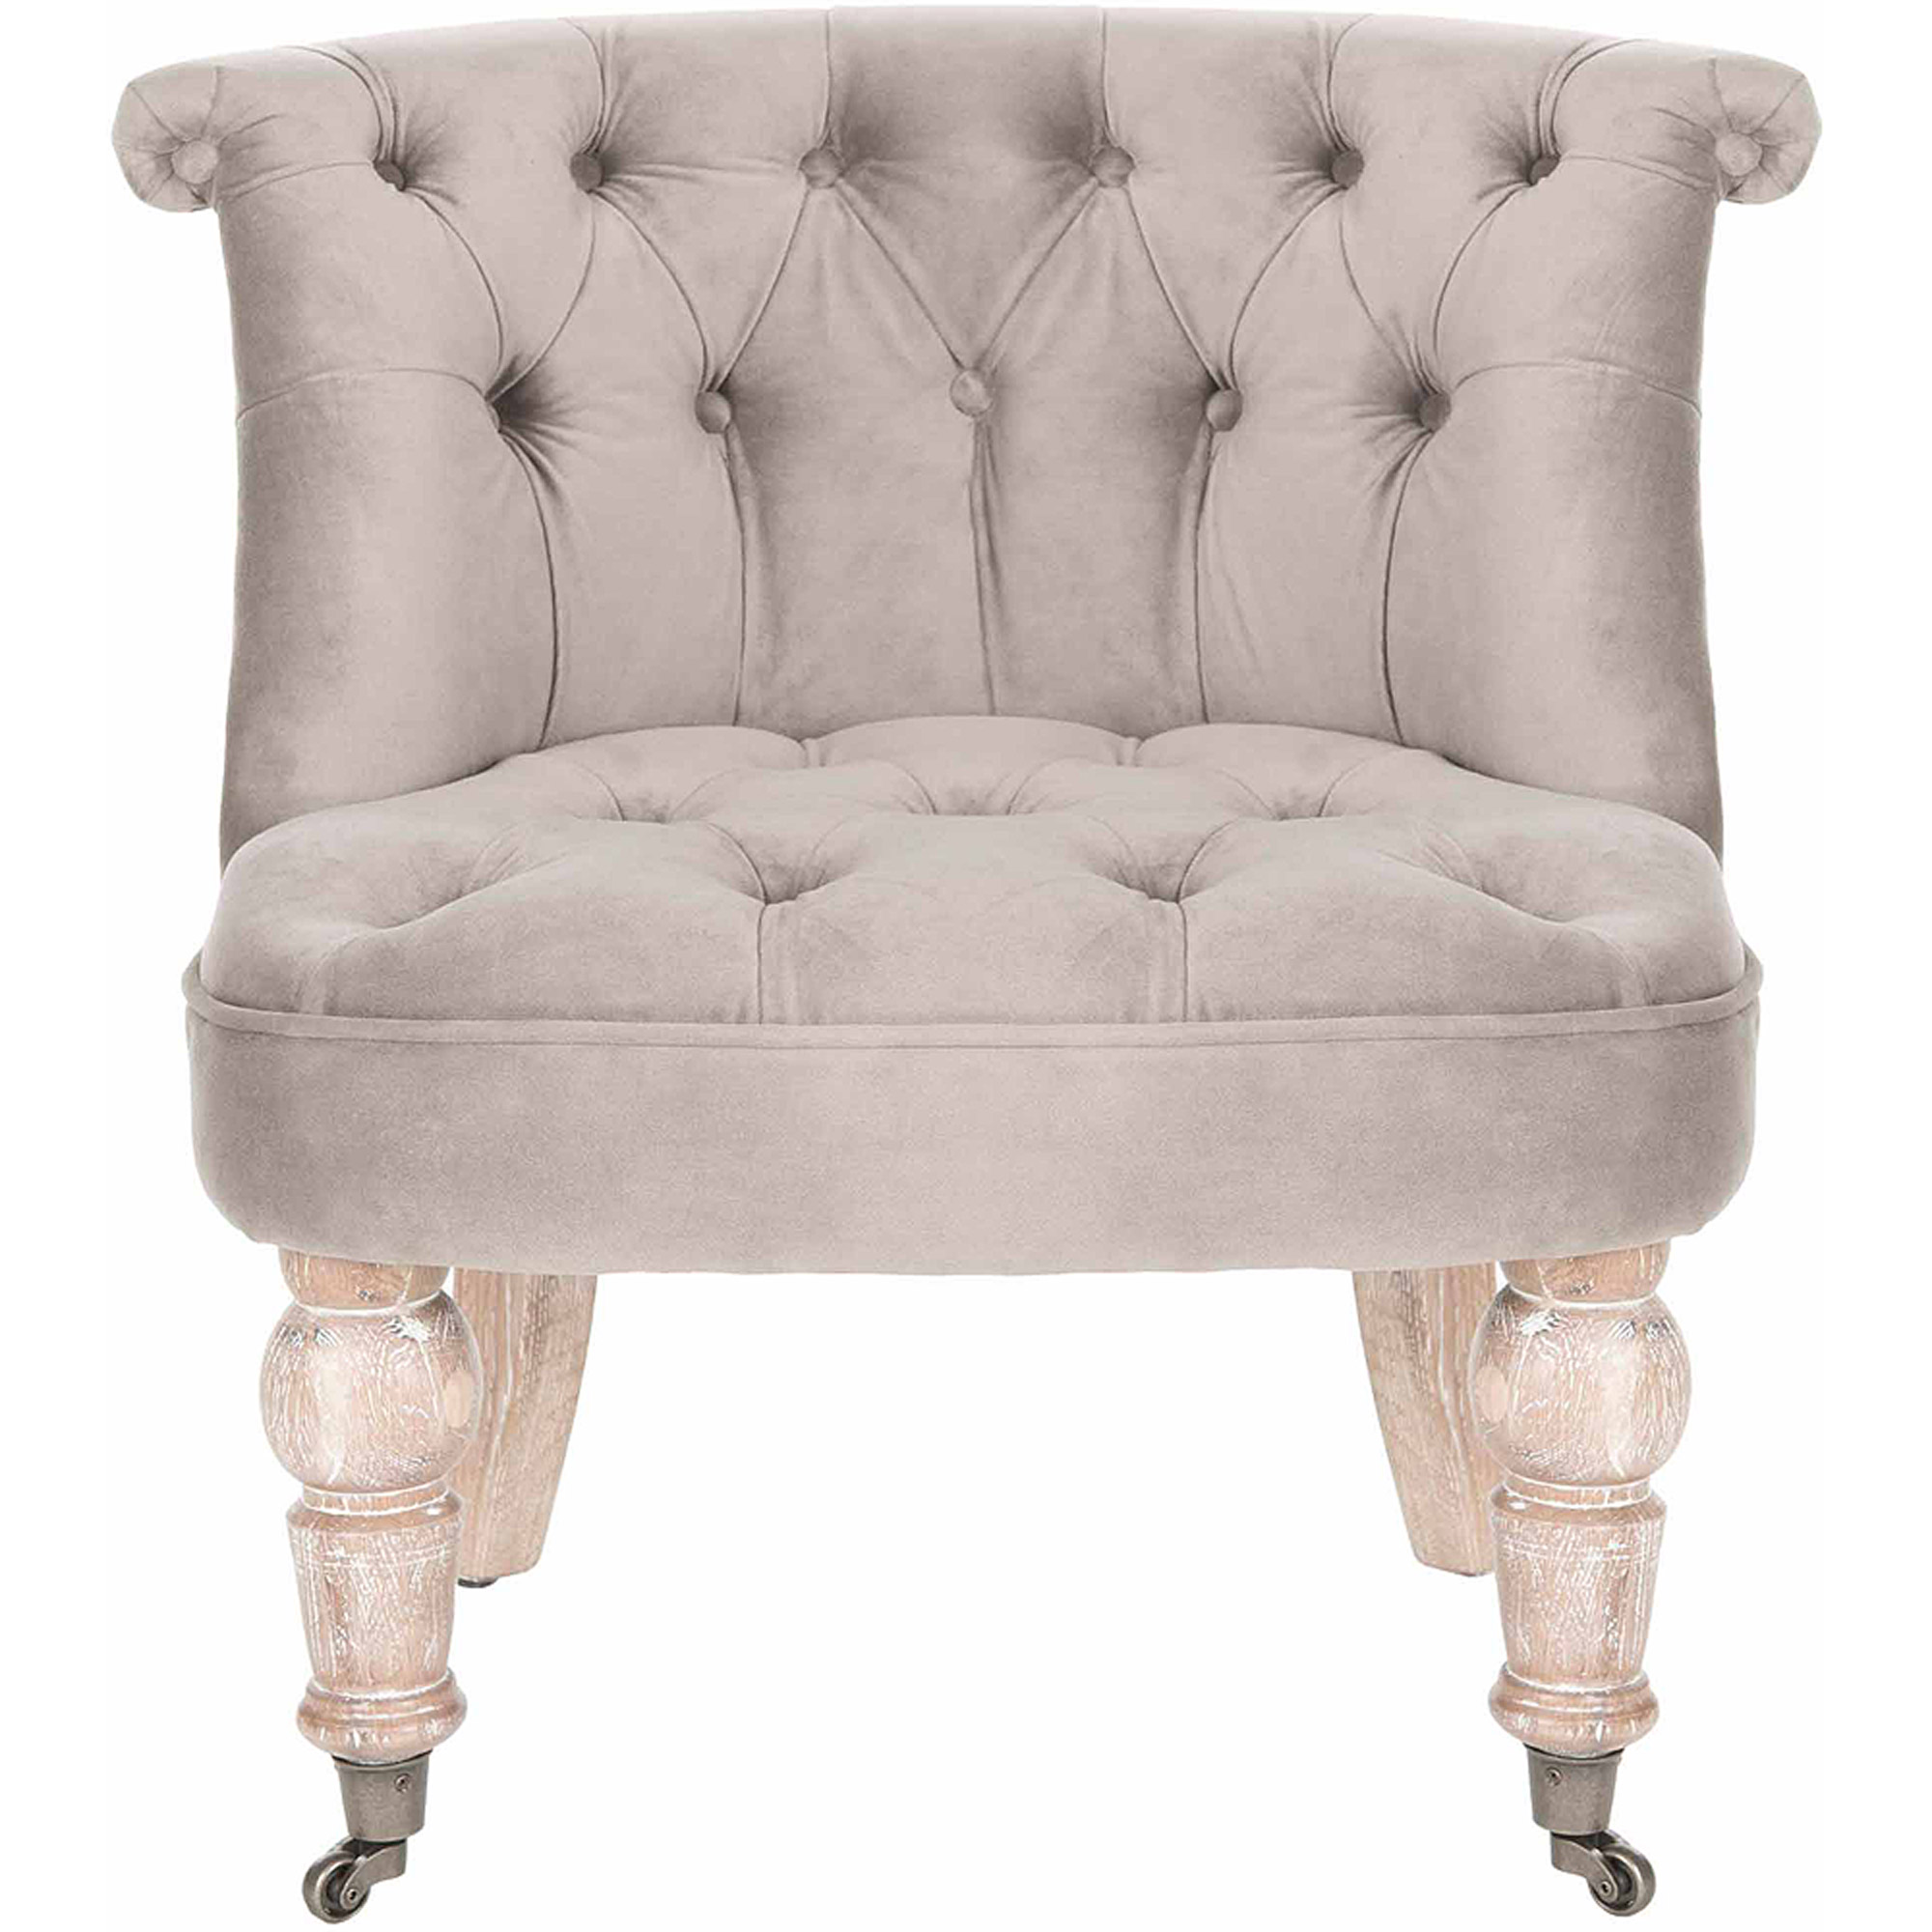 Safavieh Carlin Tufted Chair